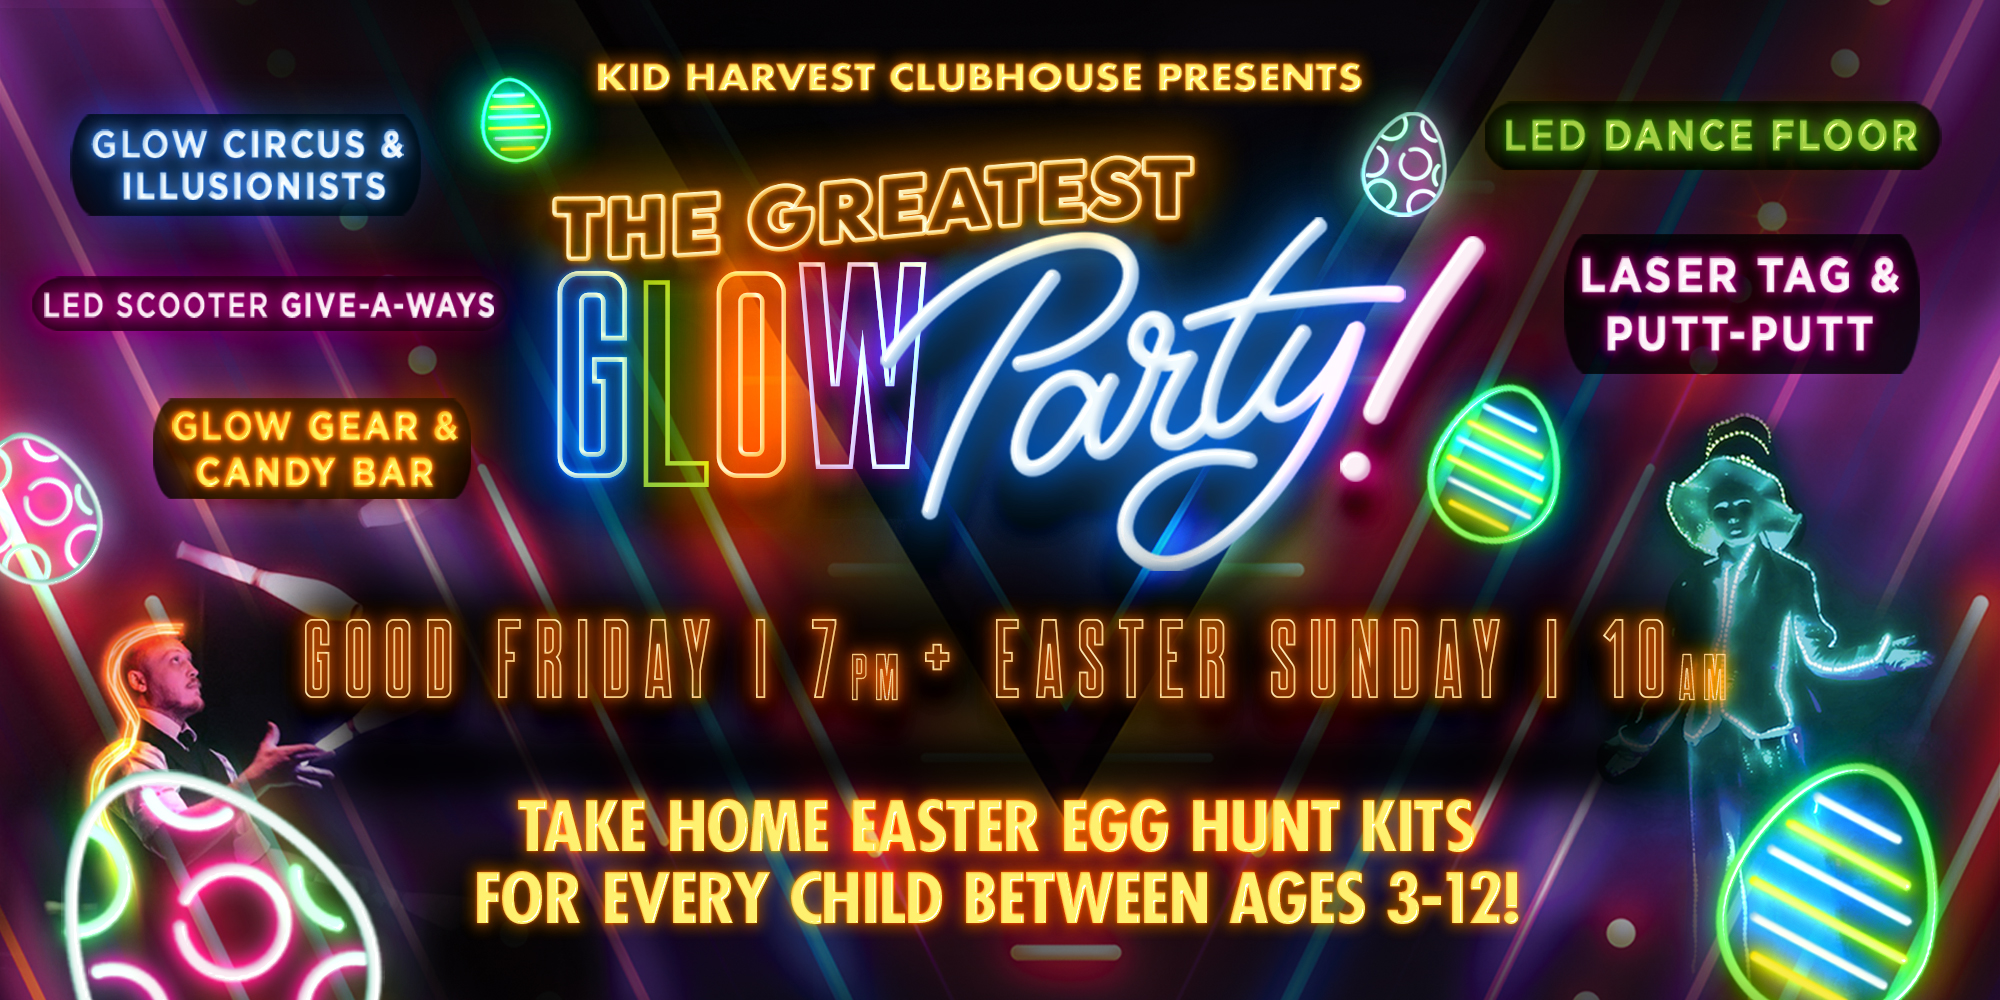 Kid Harvest Clubhouse Presents the Greatest Glowparty! Good Friday 7pm + Easter Sunday 10am  Glow Circus & Illusionists, Games, Give-a-ways, Laster Tage & Putt-puttand Take Home Easter Egg Hunt Kits for Every Child Between Ages 3-12! Led Scooter Give-a-ways Cany Bar Glow Gear